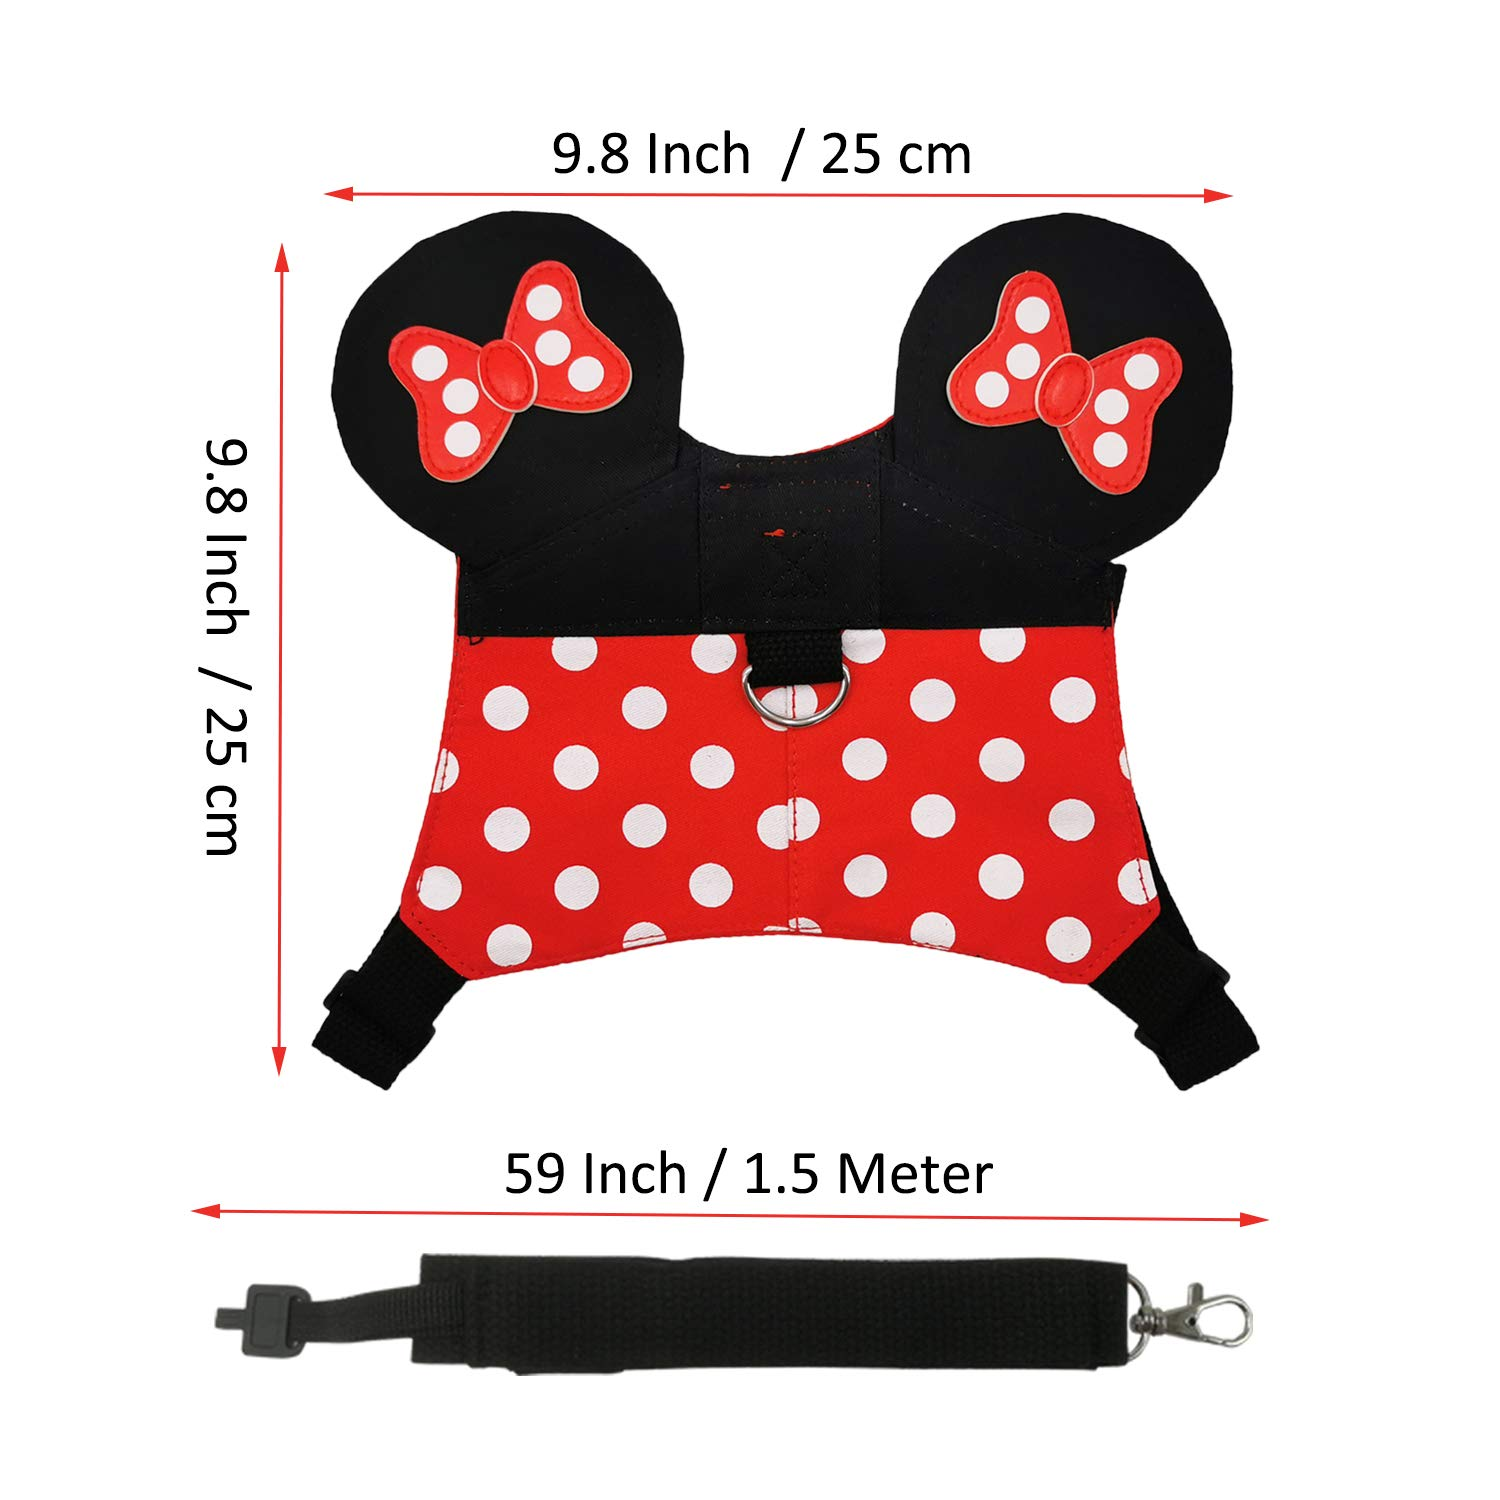 Girl Preschool Gifts Lion 3PCs Toddler Leash Backpack Set Child Safety Harness Kid Backpack with Chest Strap Anti Lost Baby Leash Wrist Link with Cute Lion for Walking Boy